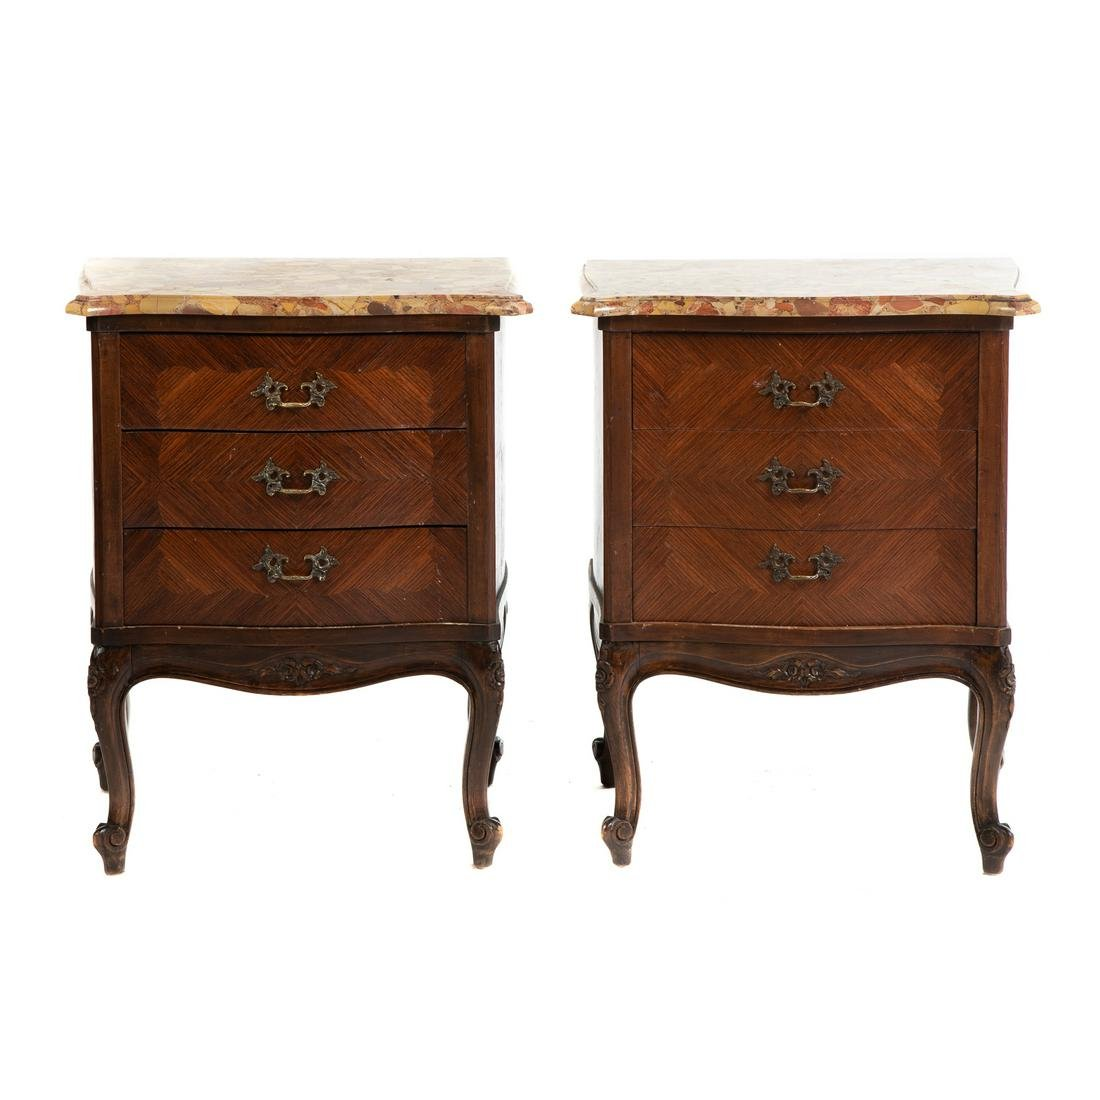 Pair Of Louis XV Style Parquetry Bedside Stands